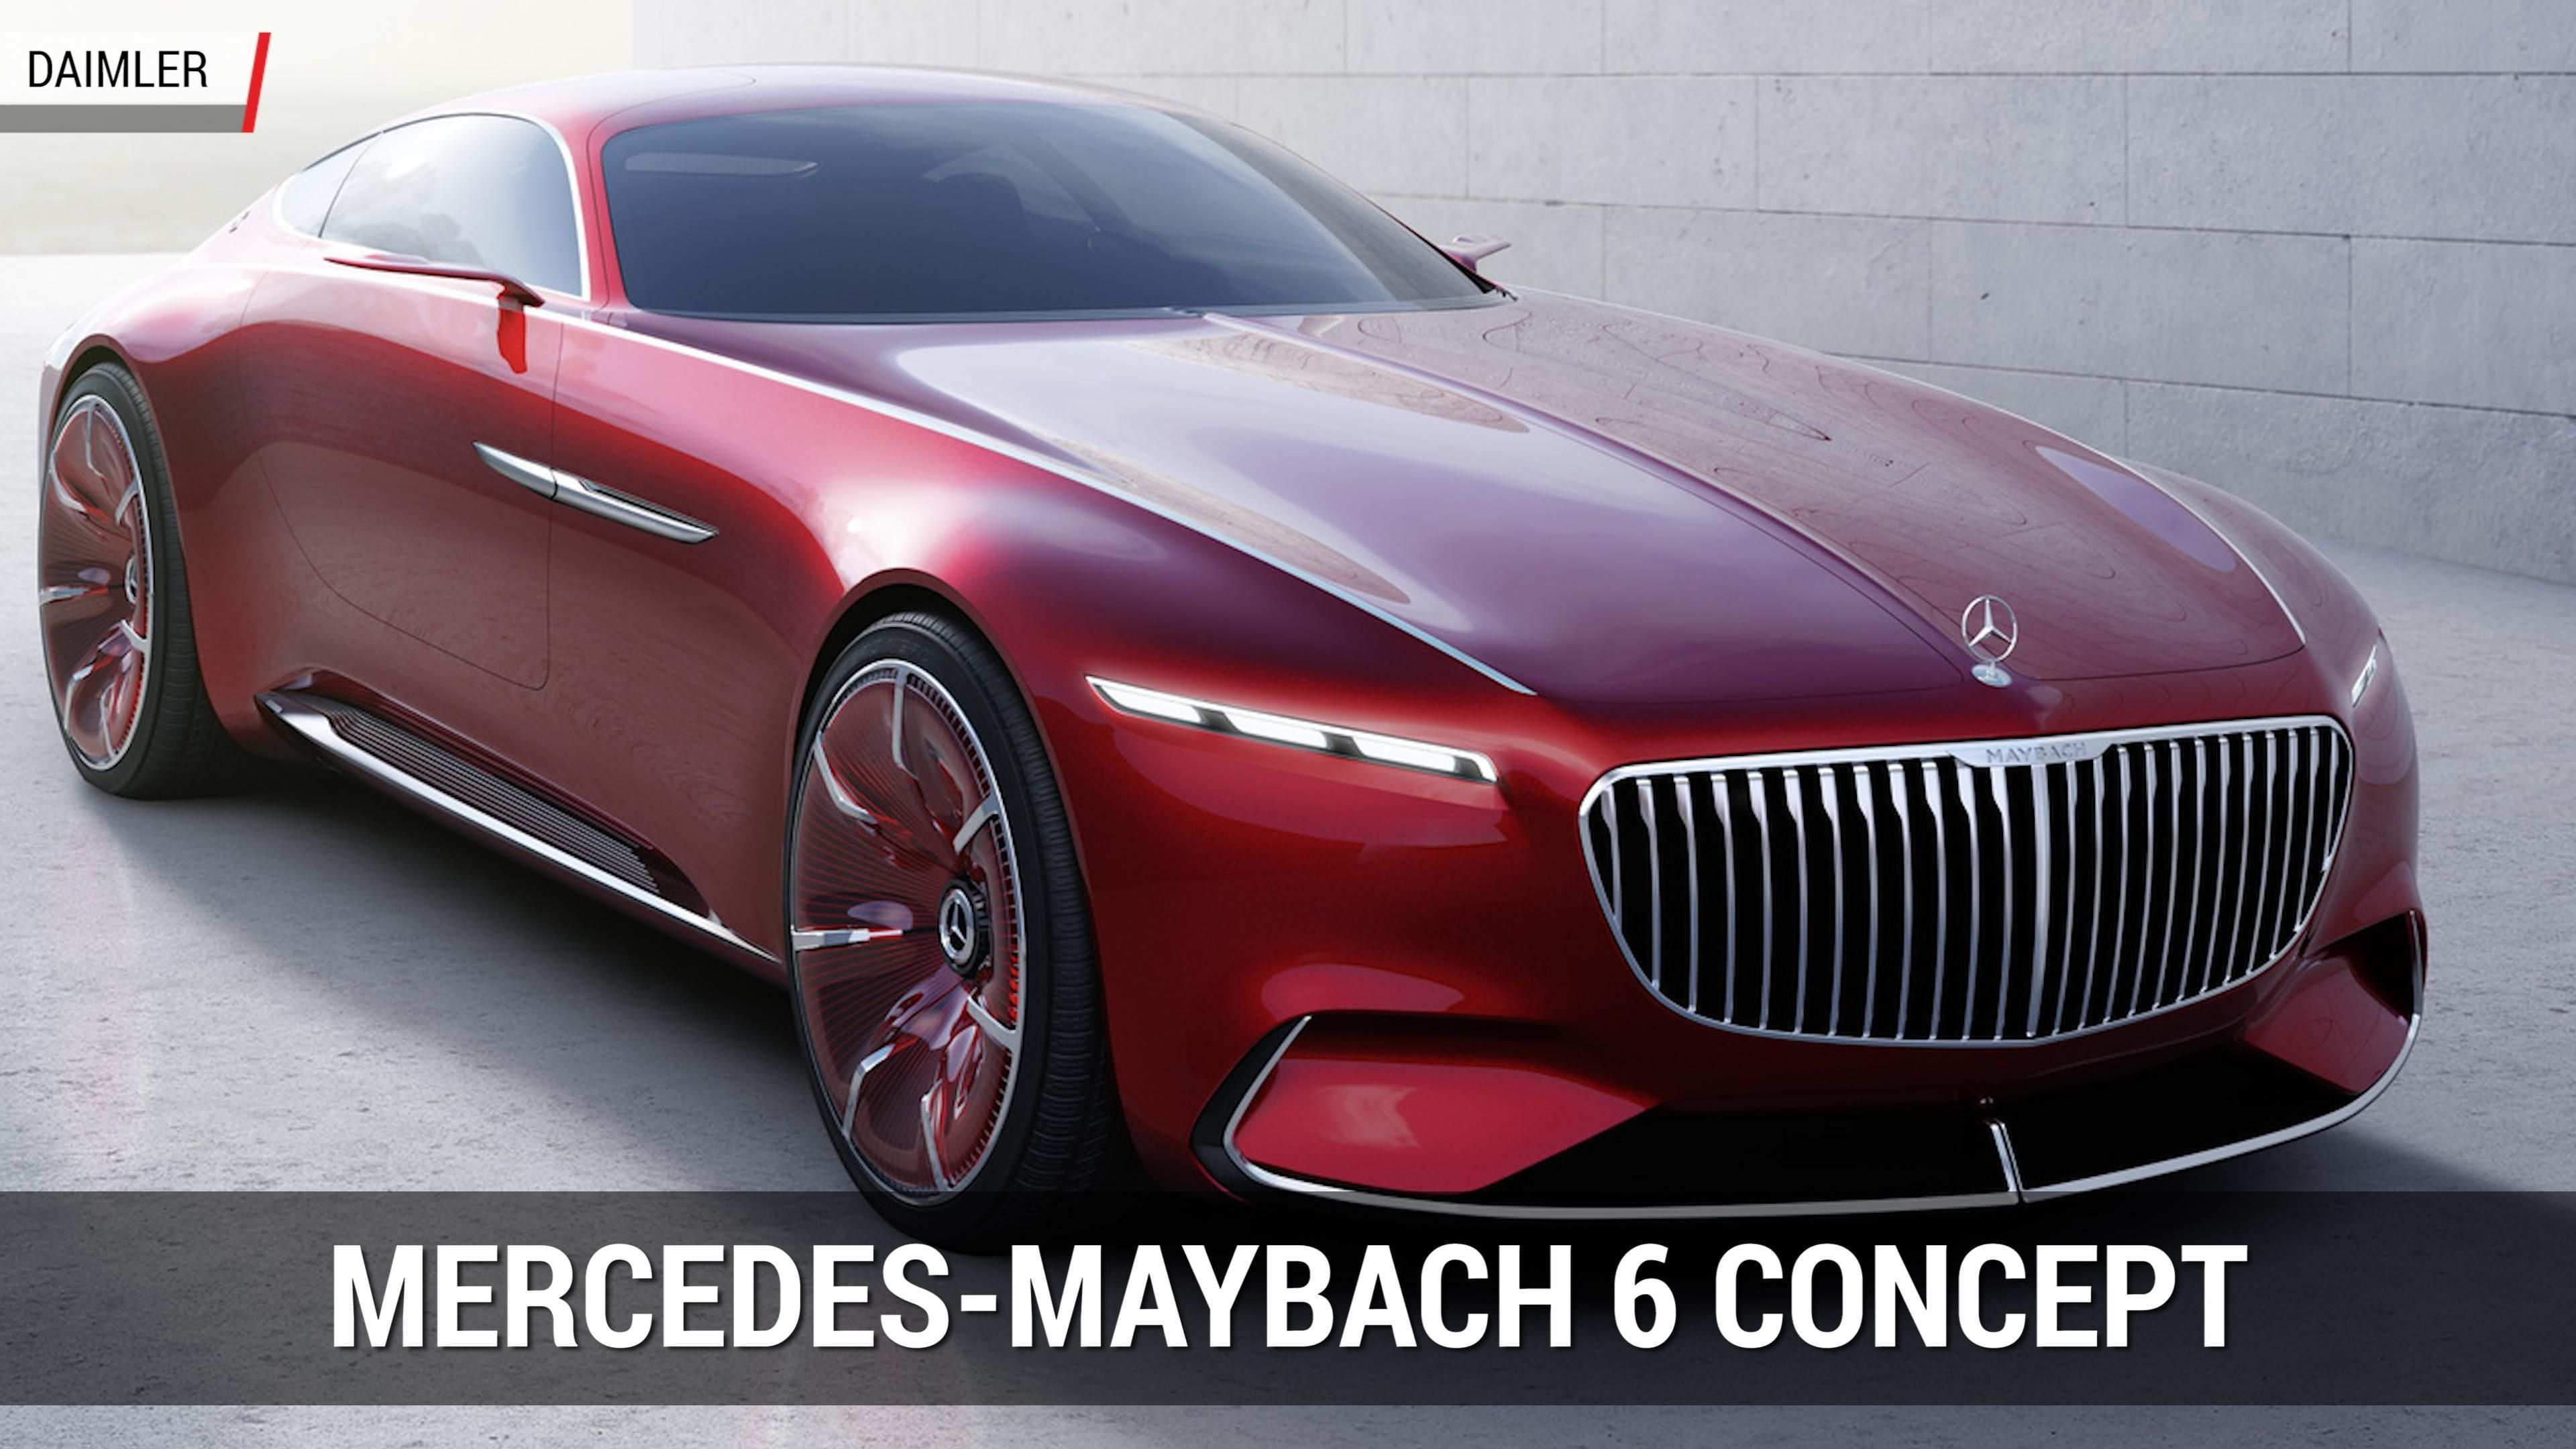 40 The 2019 Mercedes Maybach 6 Cabriolet Price Engine for 2019 Mercedes Maybach 6 Cabriolet Price